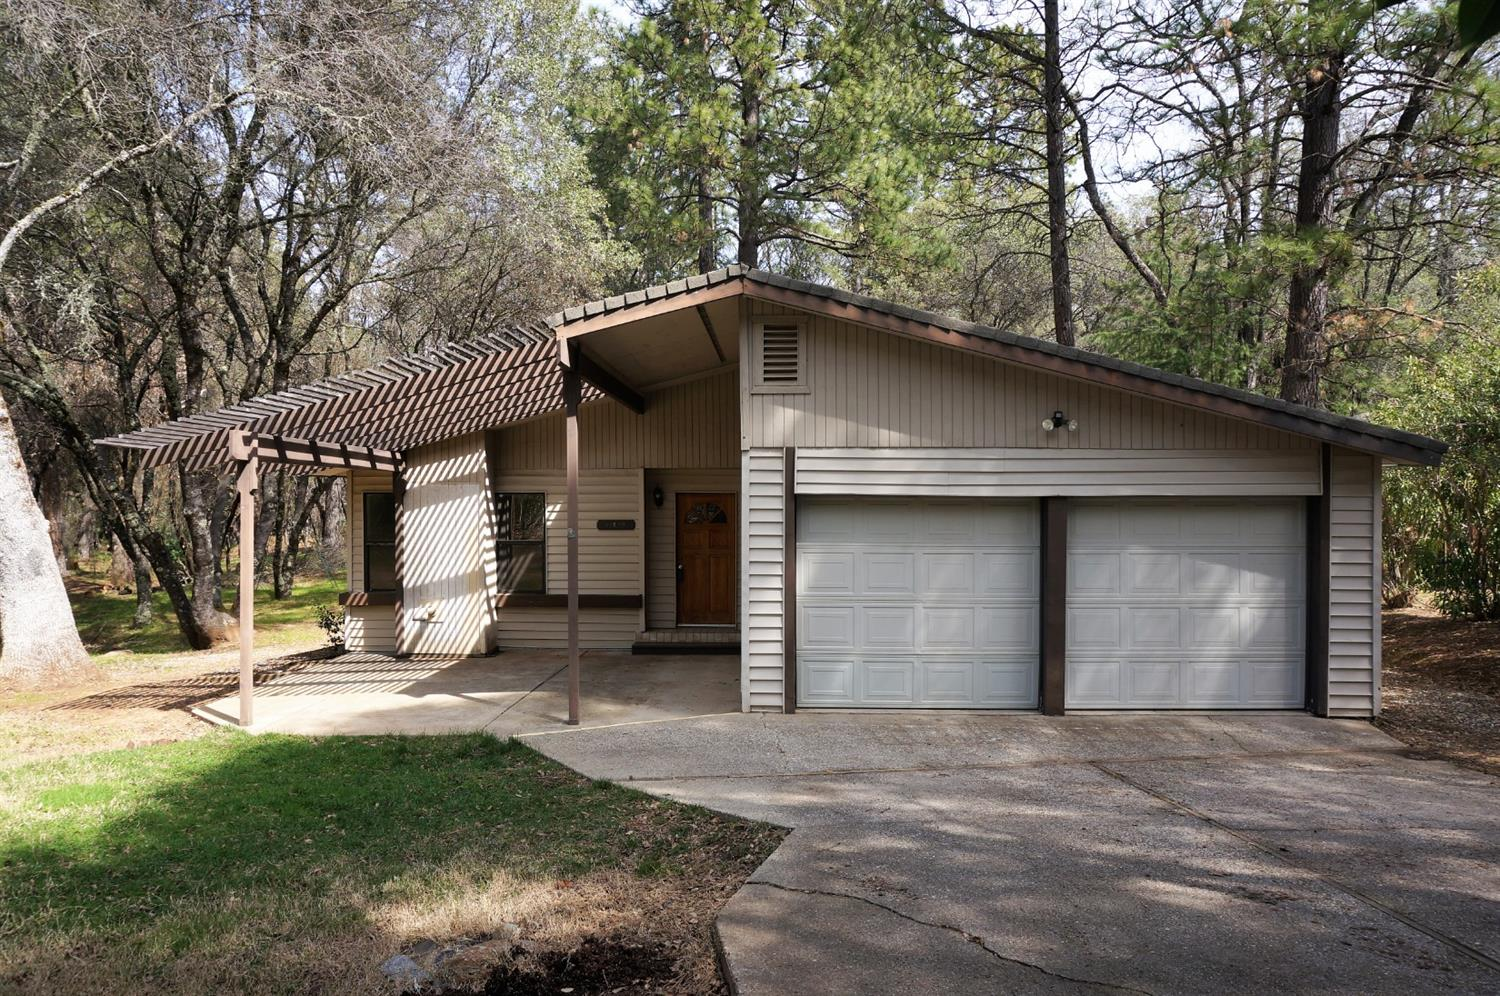 Lake Wildwood Home, not too far from Gate! Single Story Home with 3 Bedroom, 2 full baths and backs up to seasonal stream! Master Wing with outside access onto back patio, shed perfect for extra storage. Fenced in back yard! Three sliding glass doors lead to the covered back patio and overlook Turkey Ravine. Level lot with a very idyllic setting.  Lake Wildwood is a 24 hour gated community with 325+ ac recreational lake, 19 hole championship golf course, lighted tennis courts, 5 parks and beaches, boat launch and MORE! All this located just 60 miles NE of the Sacramento International Airport! Come see why we say Vacation in your own backyard!